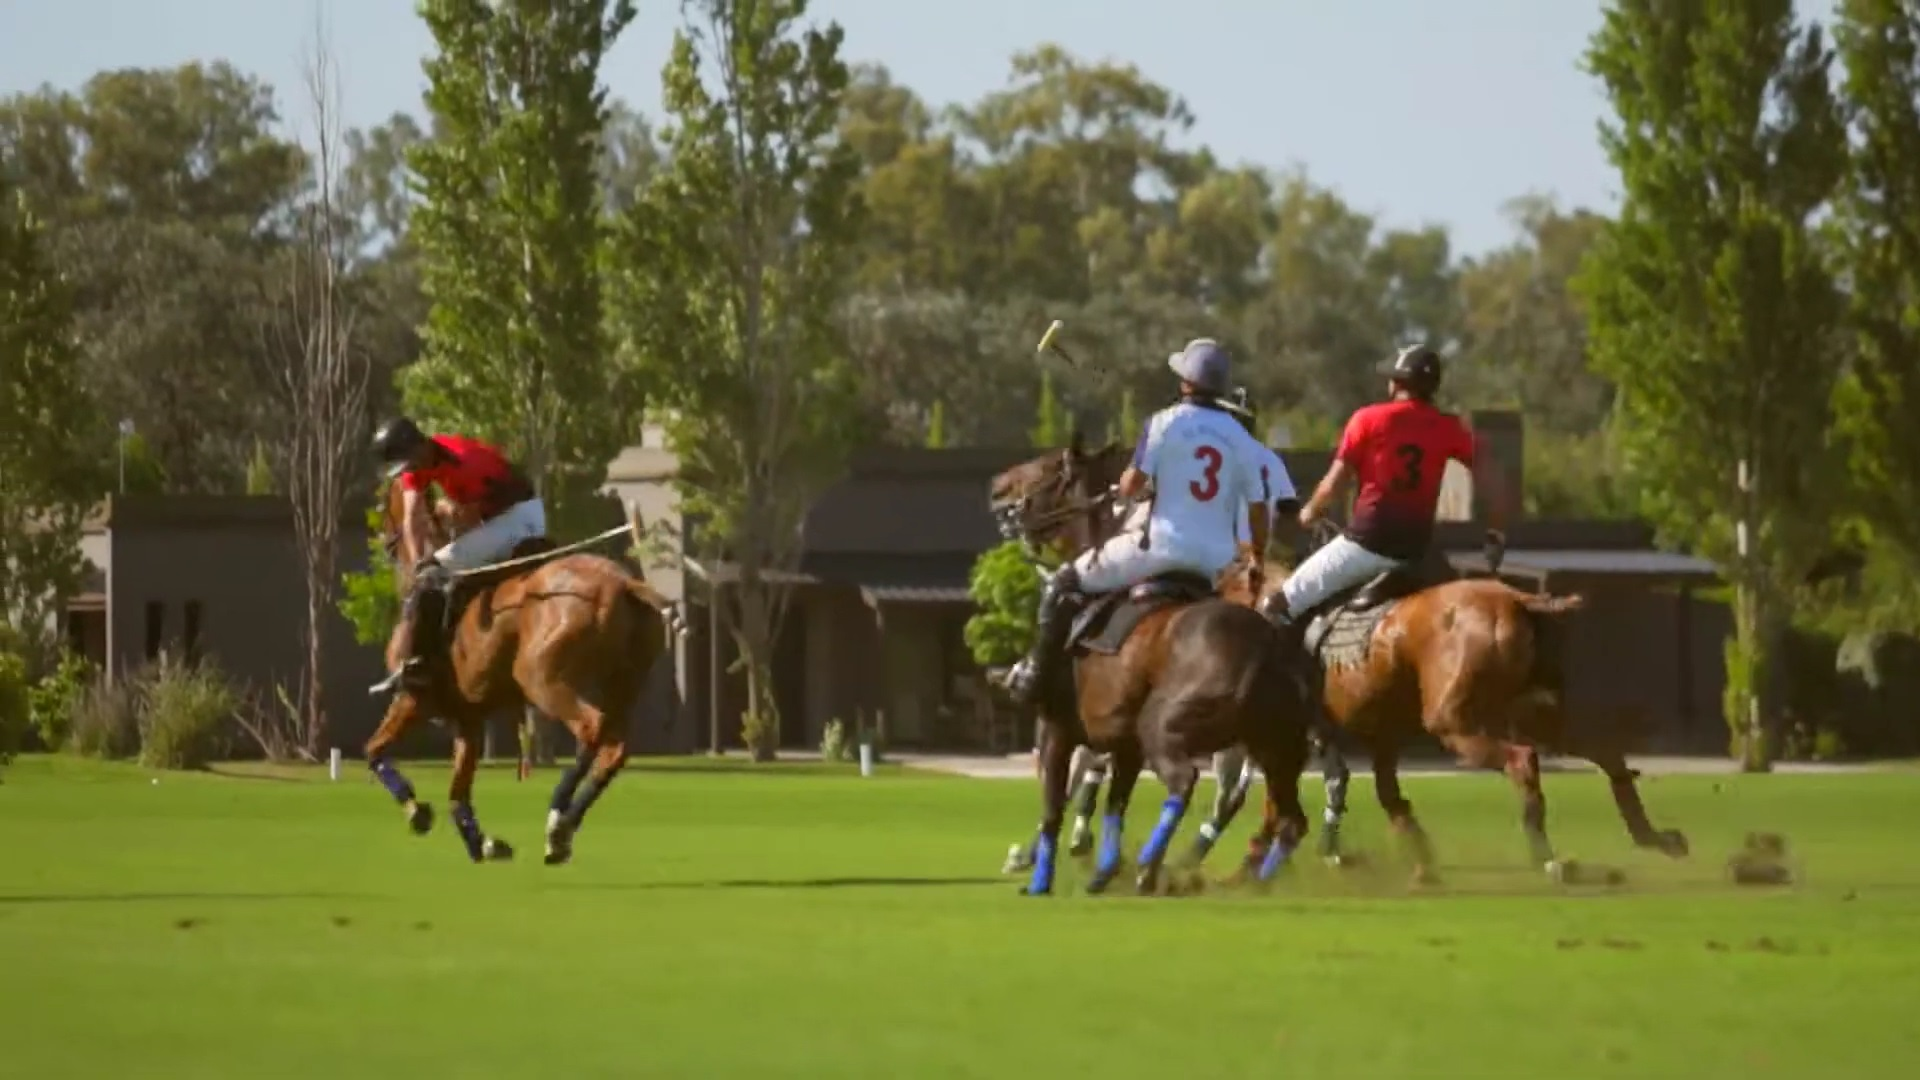 Campo Privado y Club de Polo